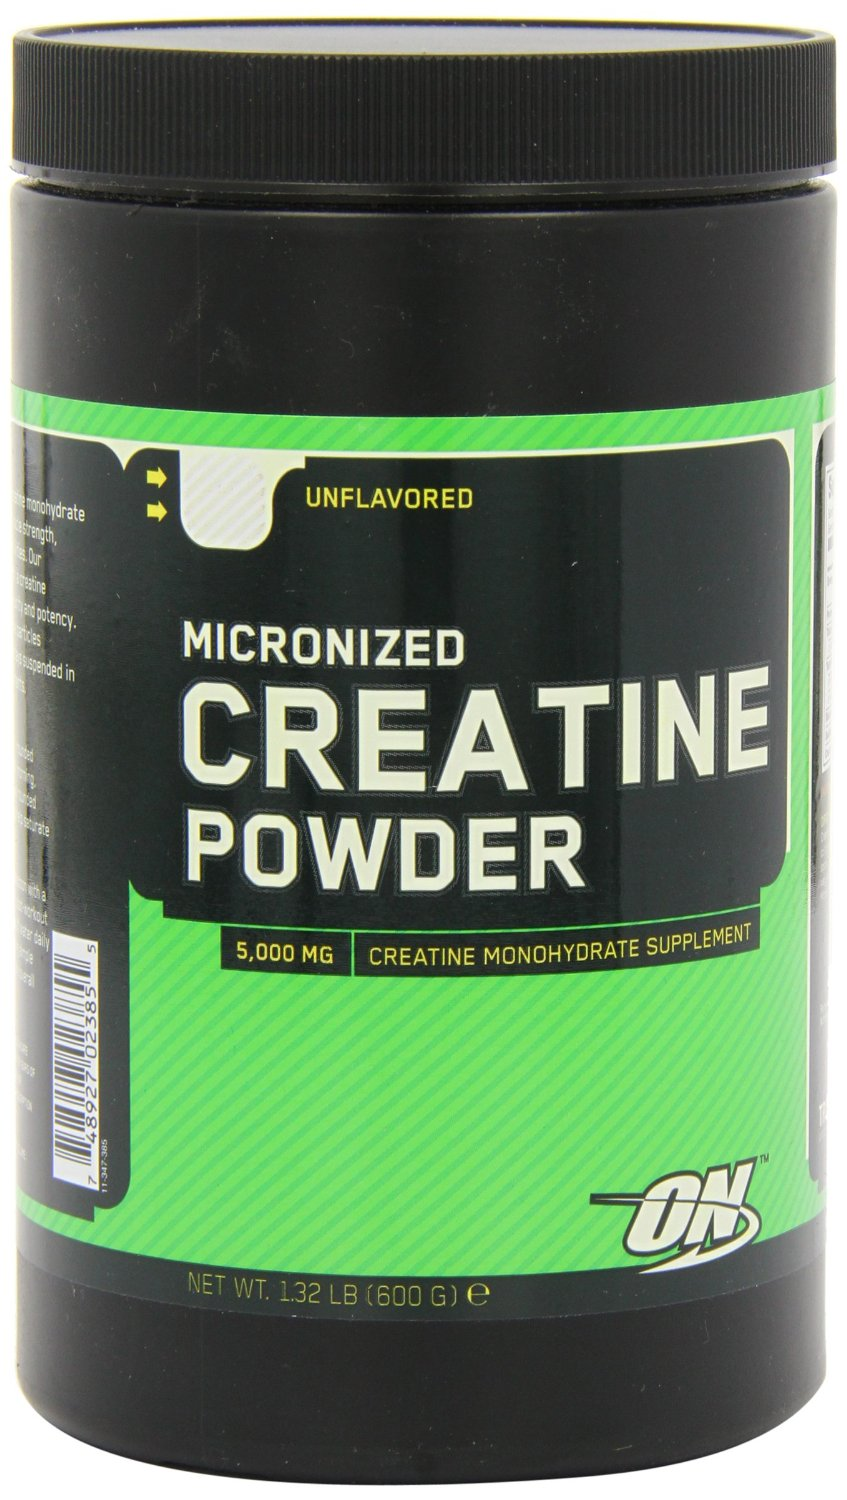 CREATINE AND WEIGHT LOSS TIPS